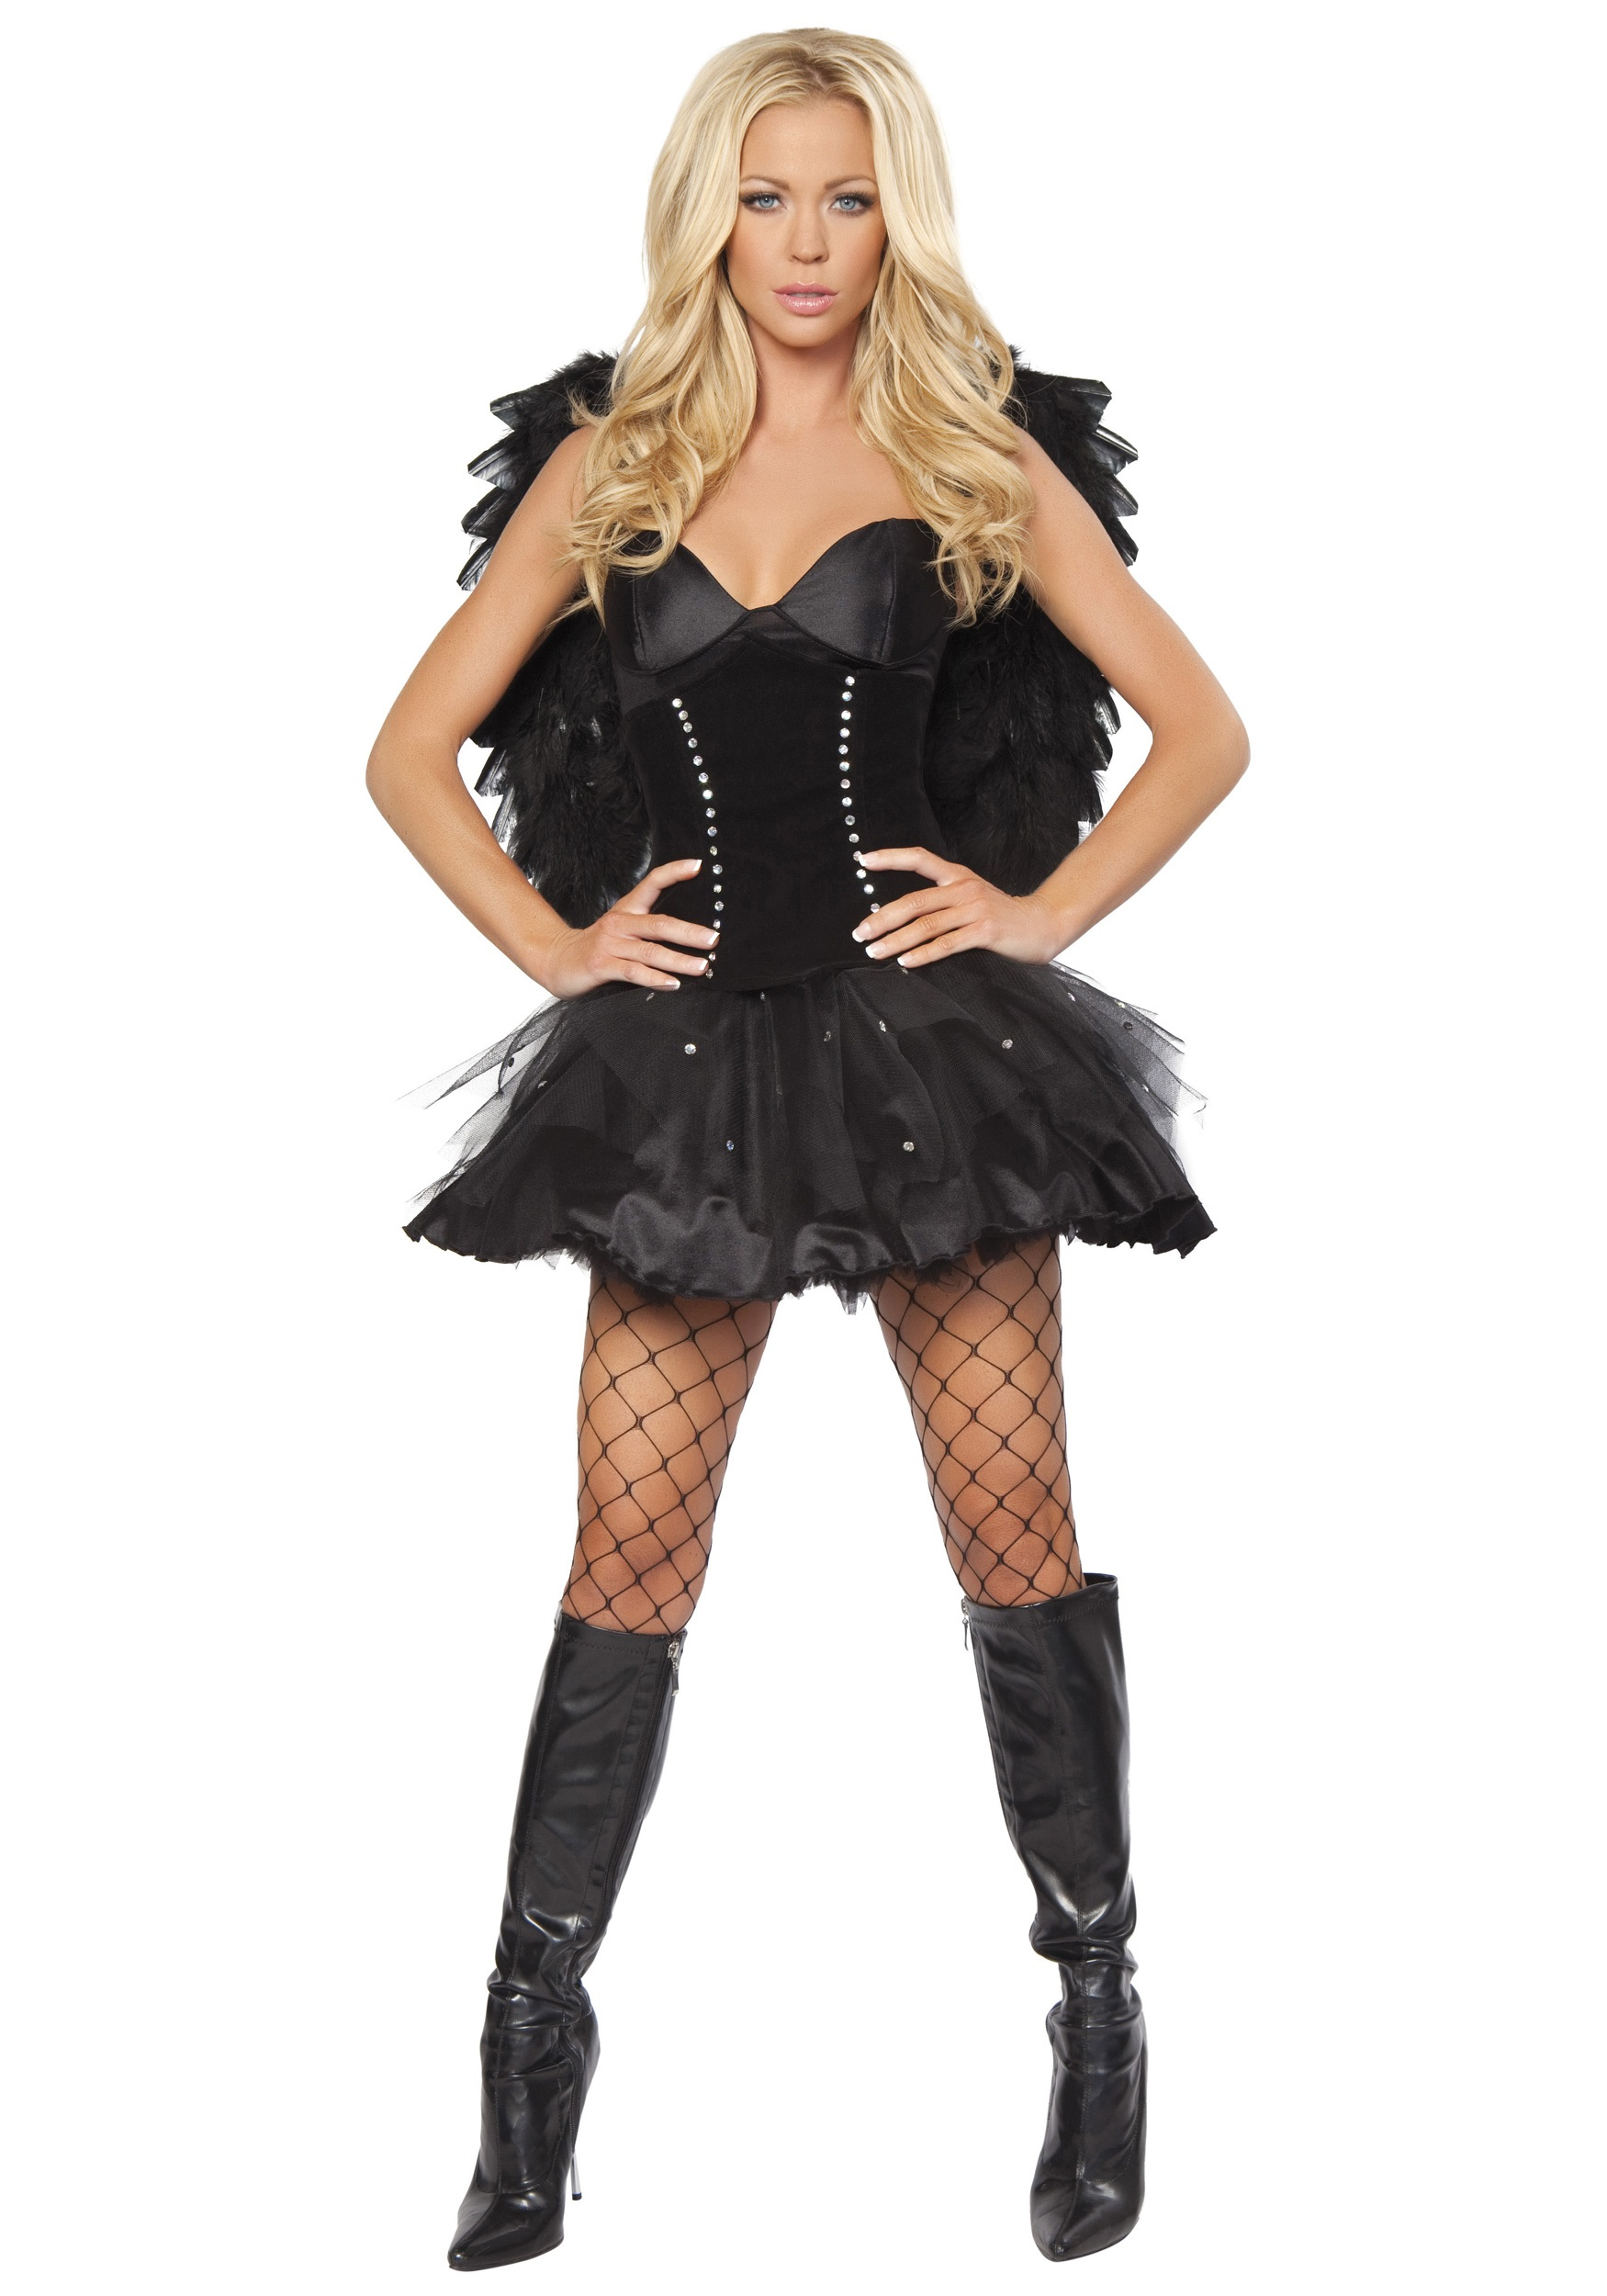 costumes adult angel Pictures of